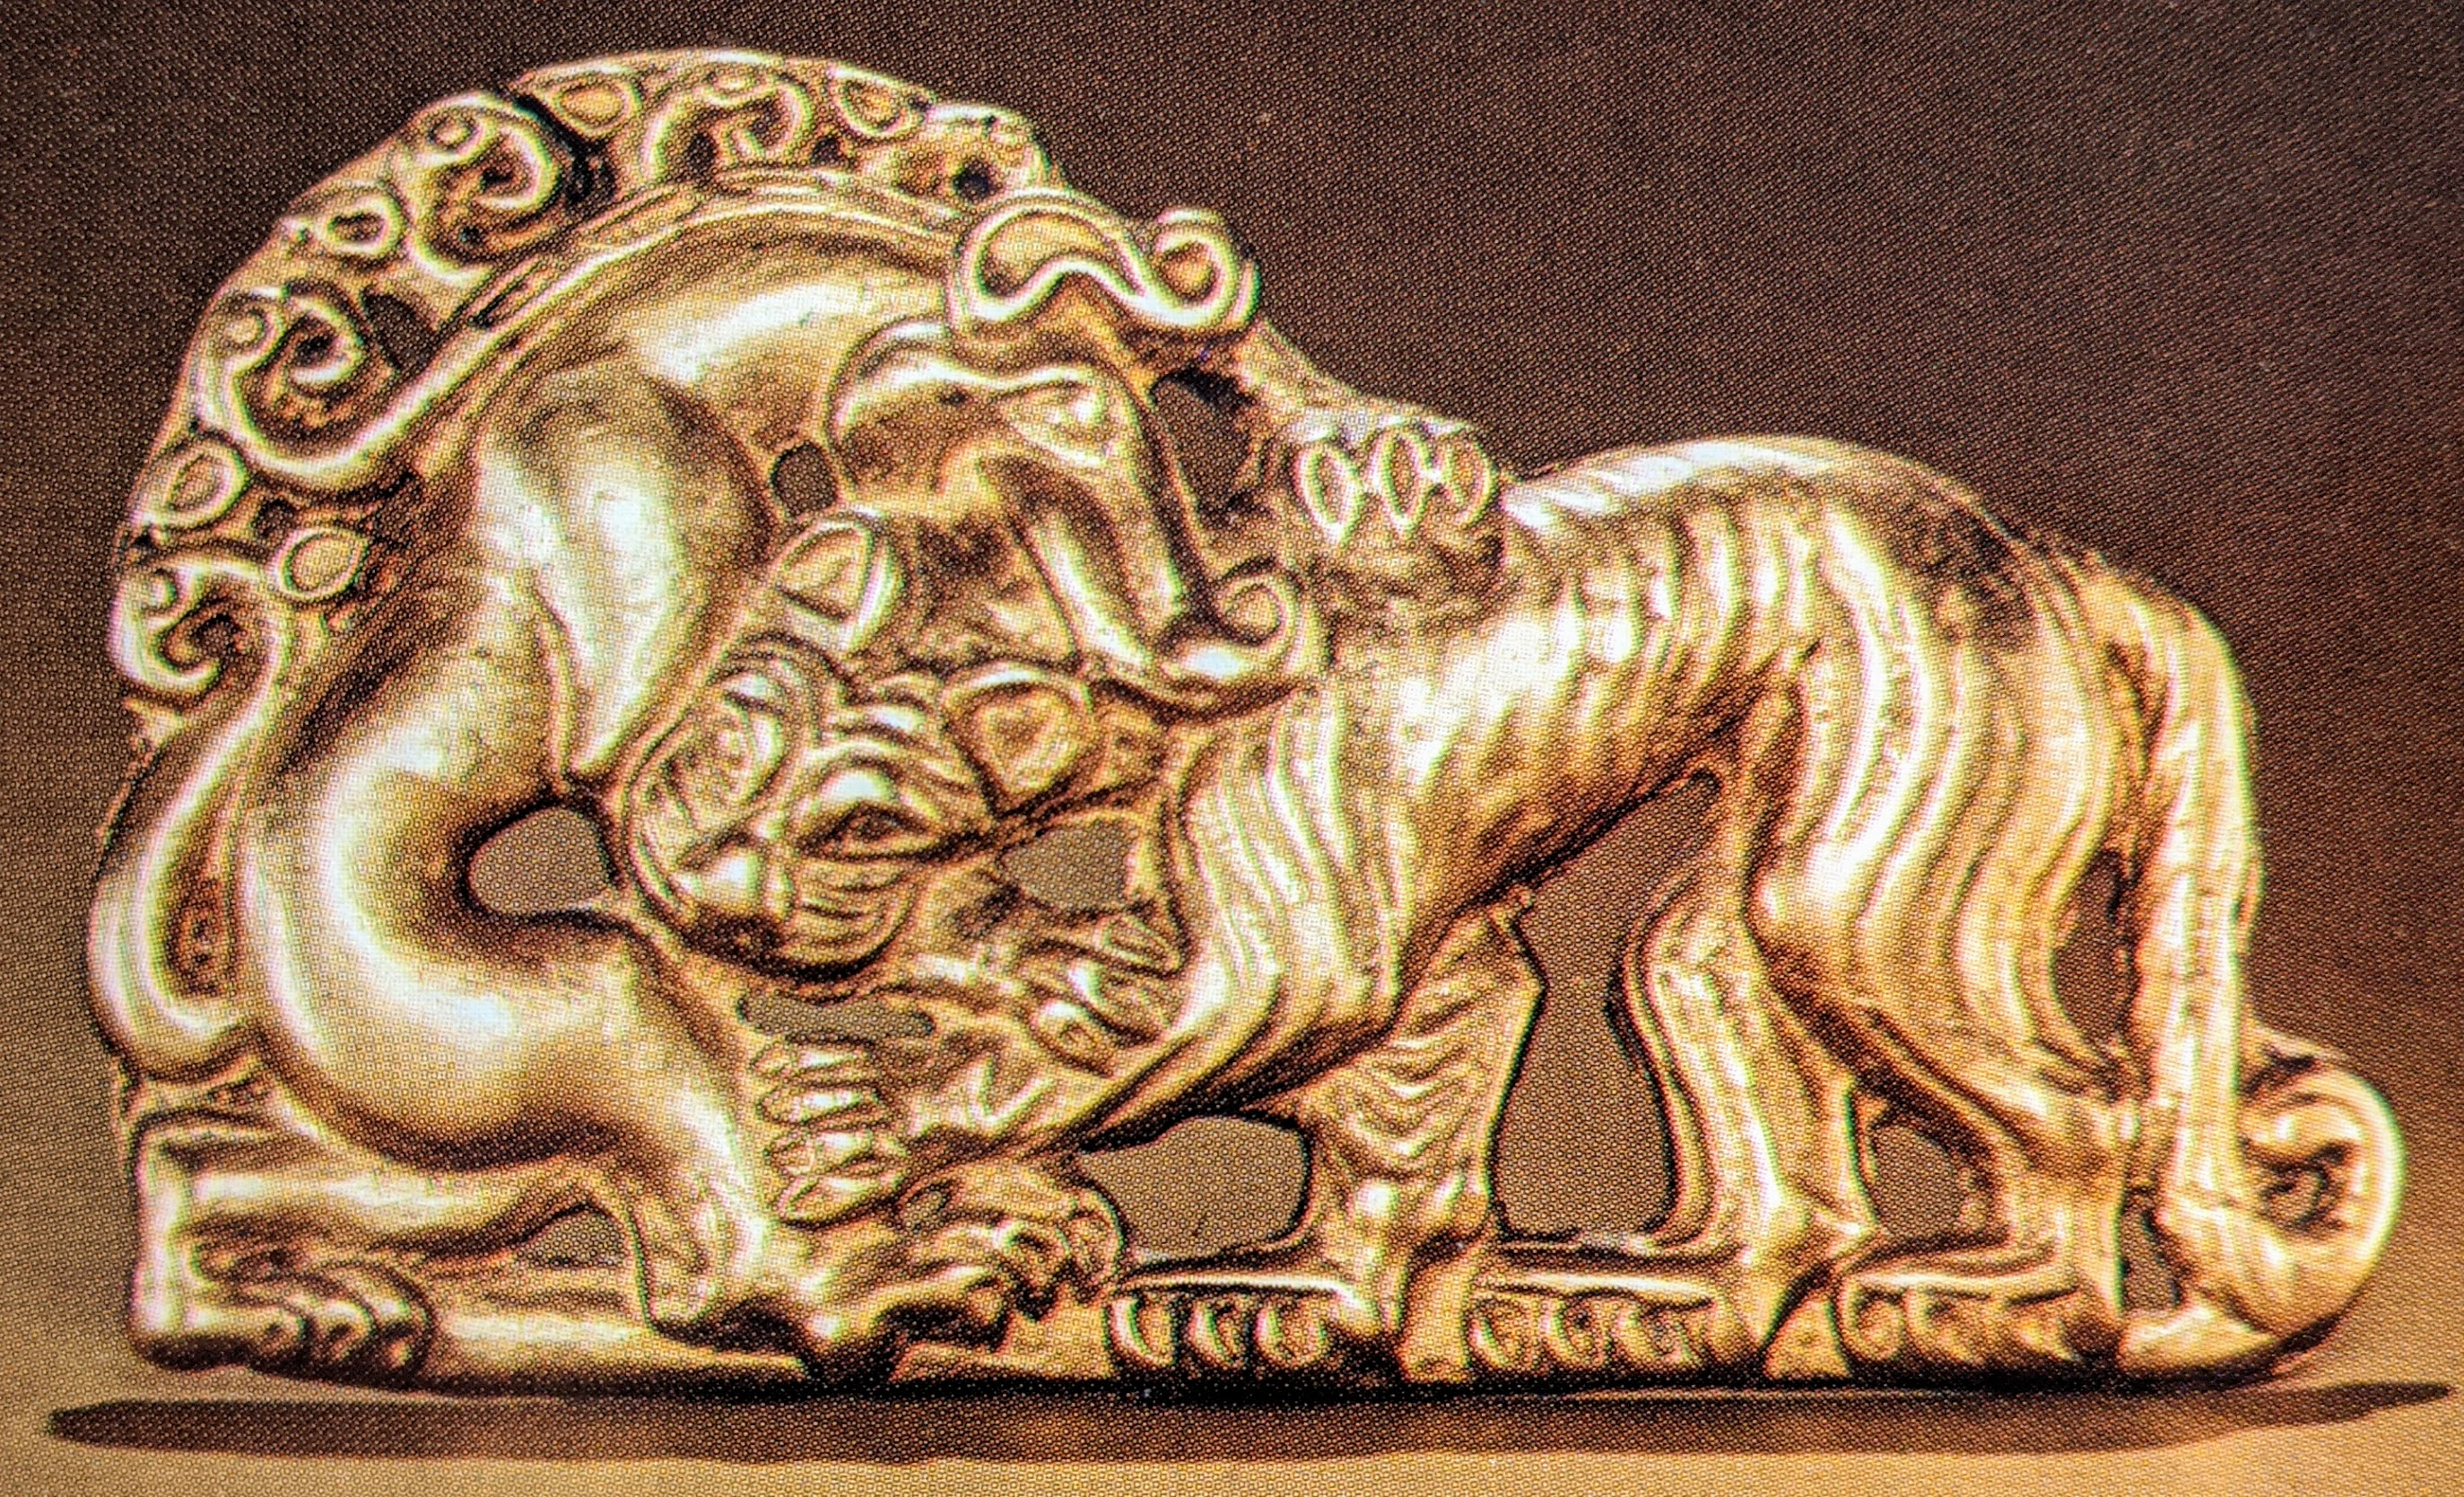 Boar and Tiger fighting gold plaque